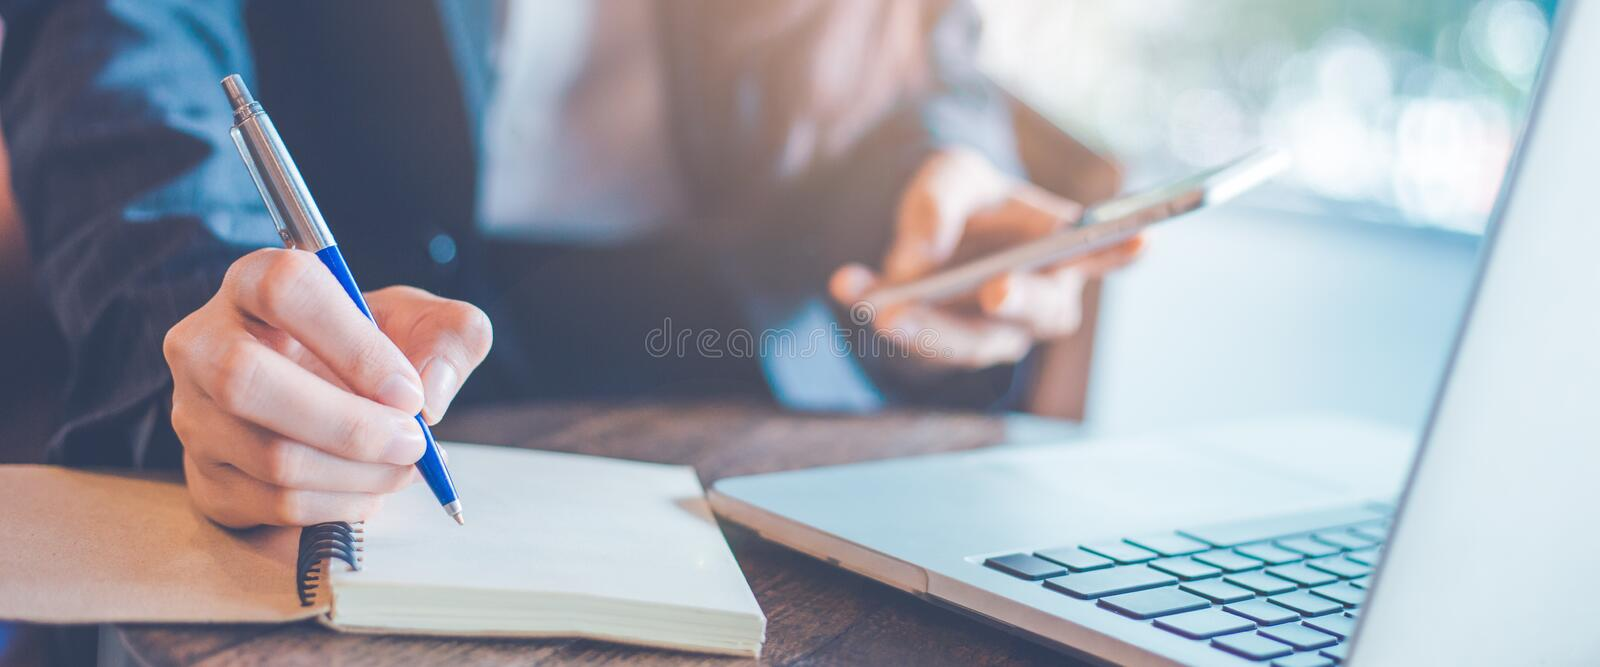 Business woman hand writing on a notepad with a pen in the offi stock images